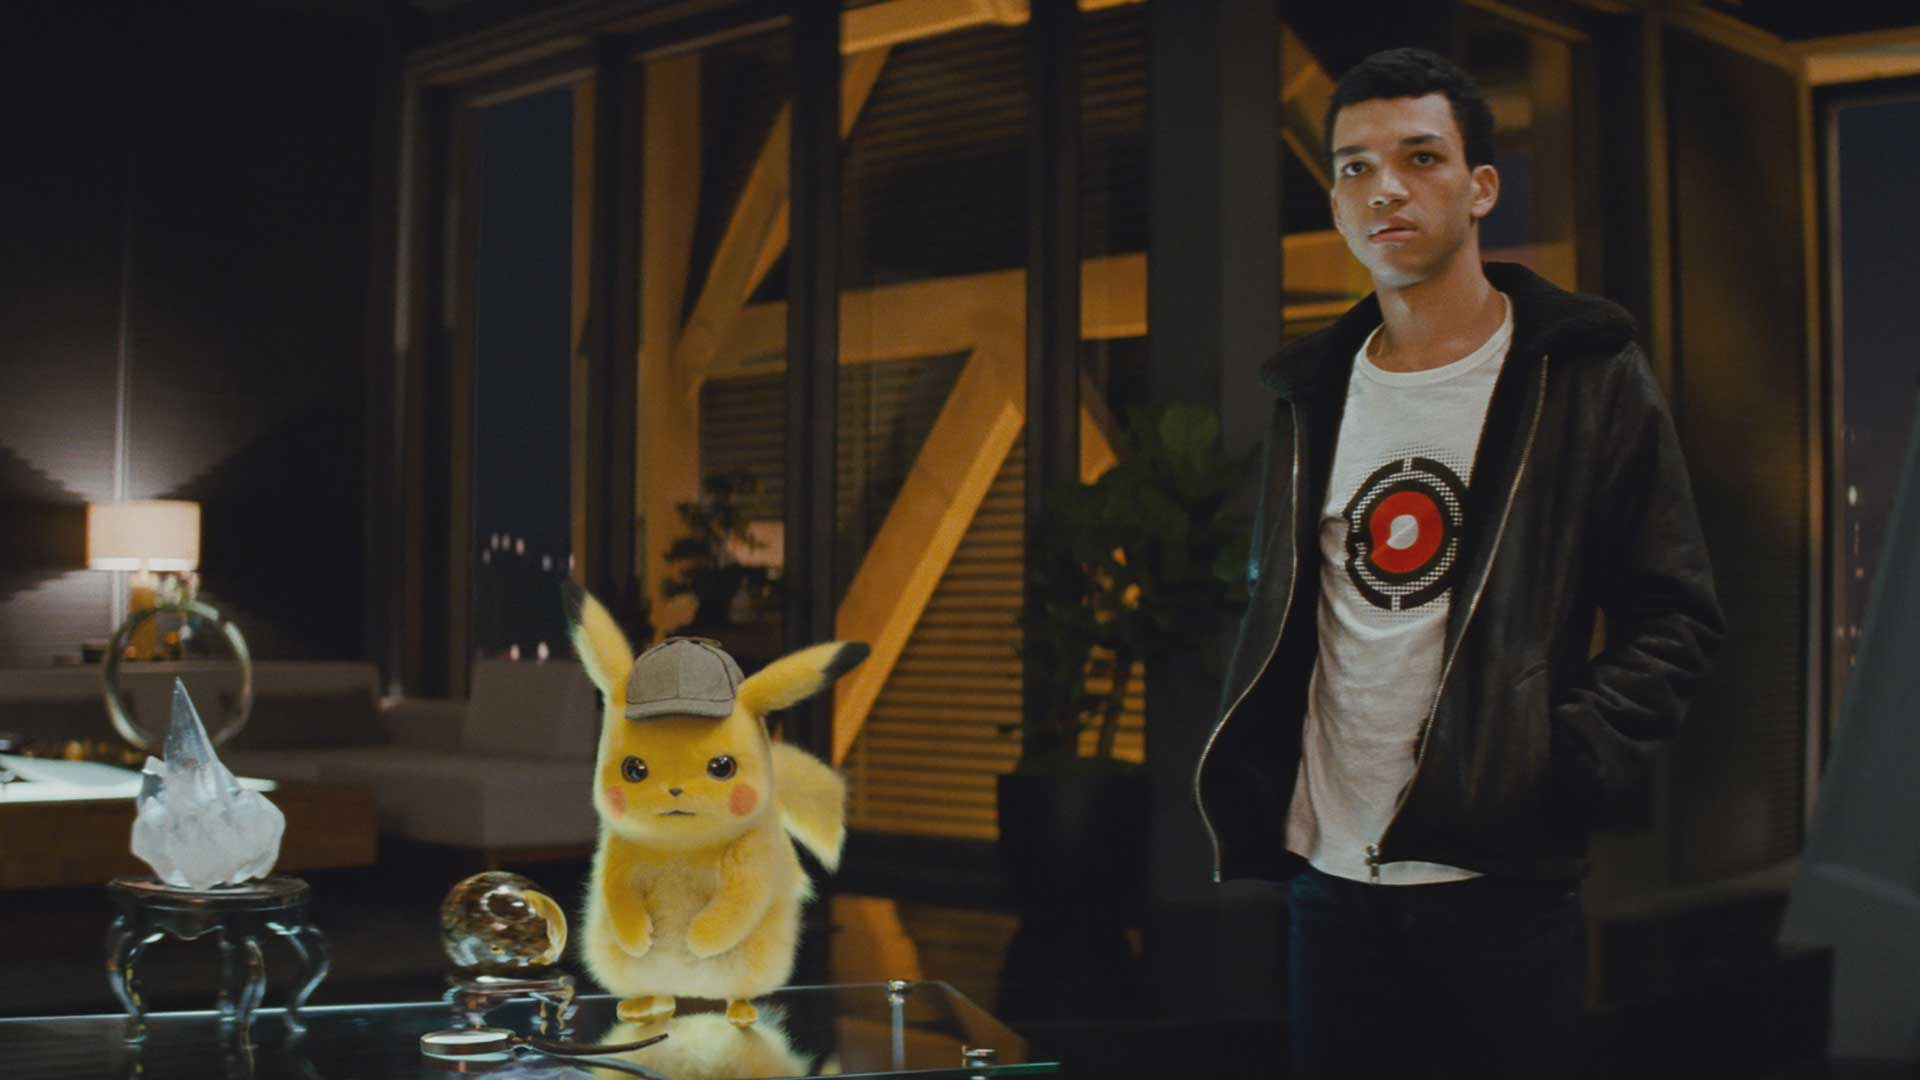 Detective pikachu review 1